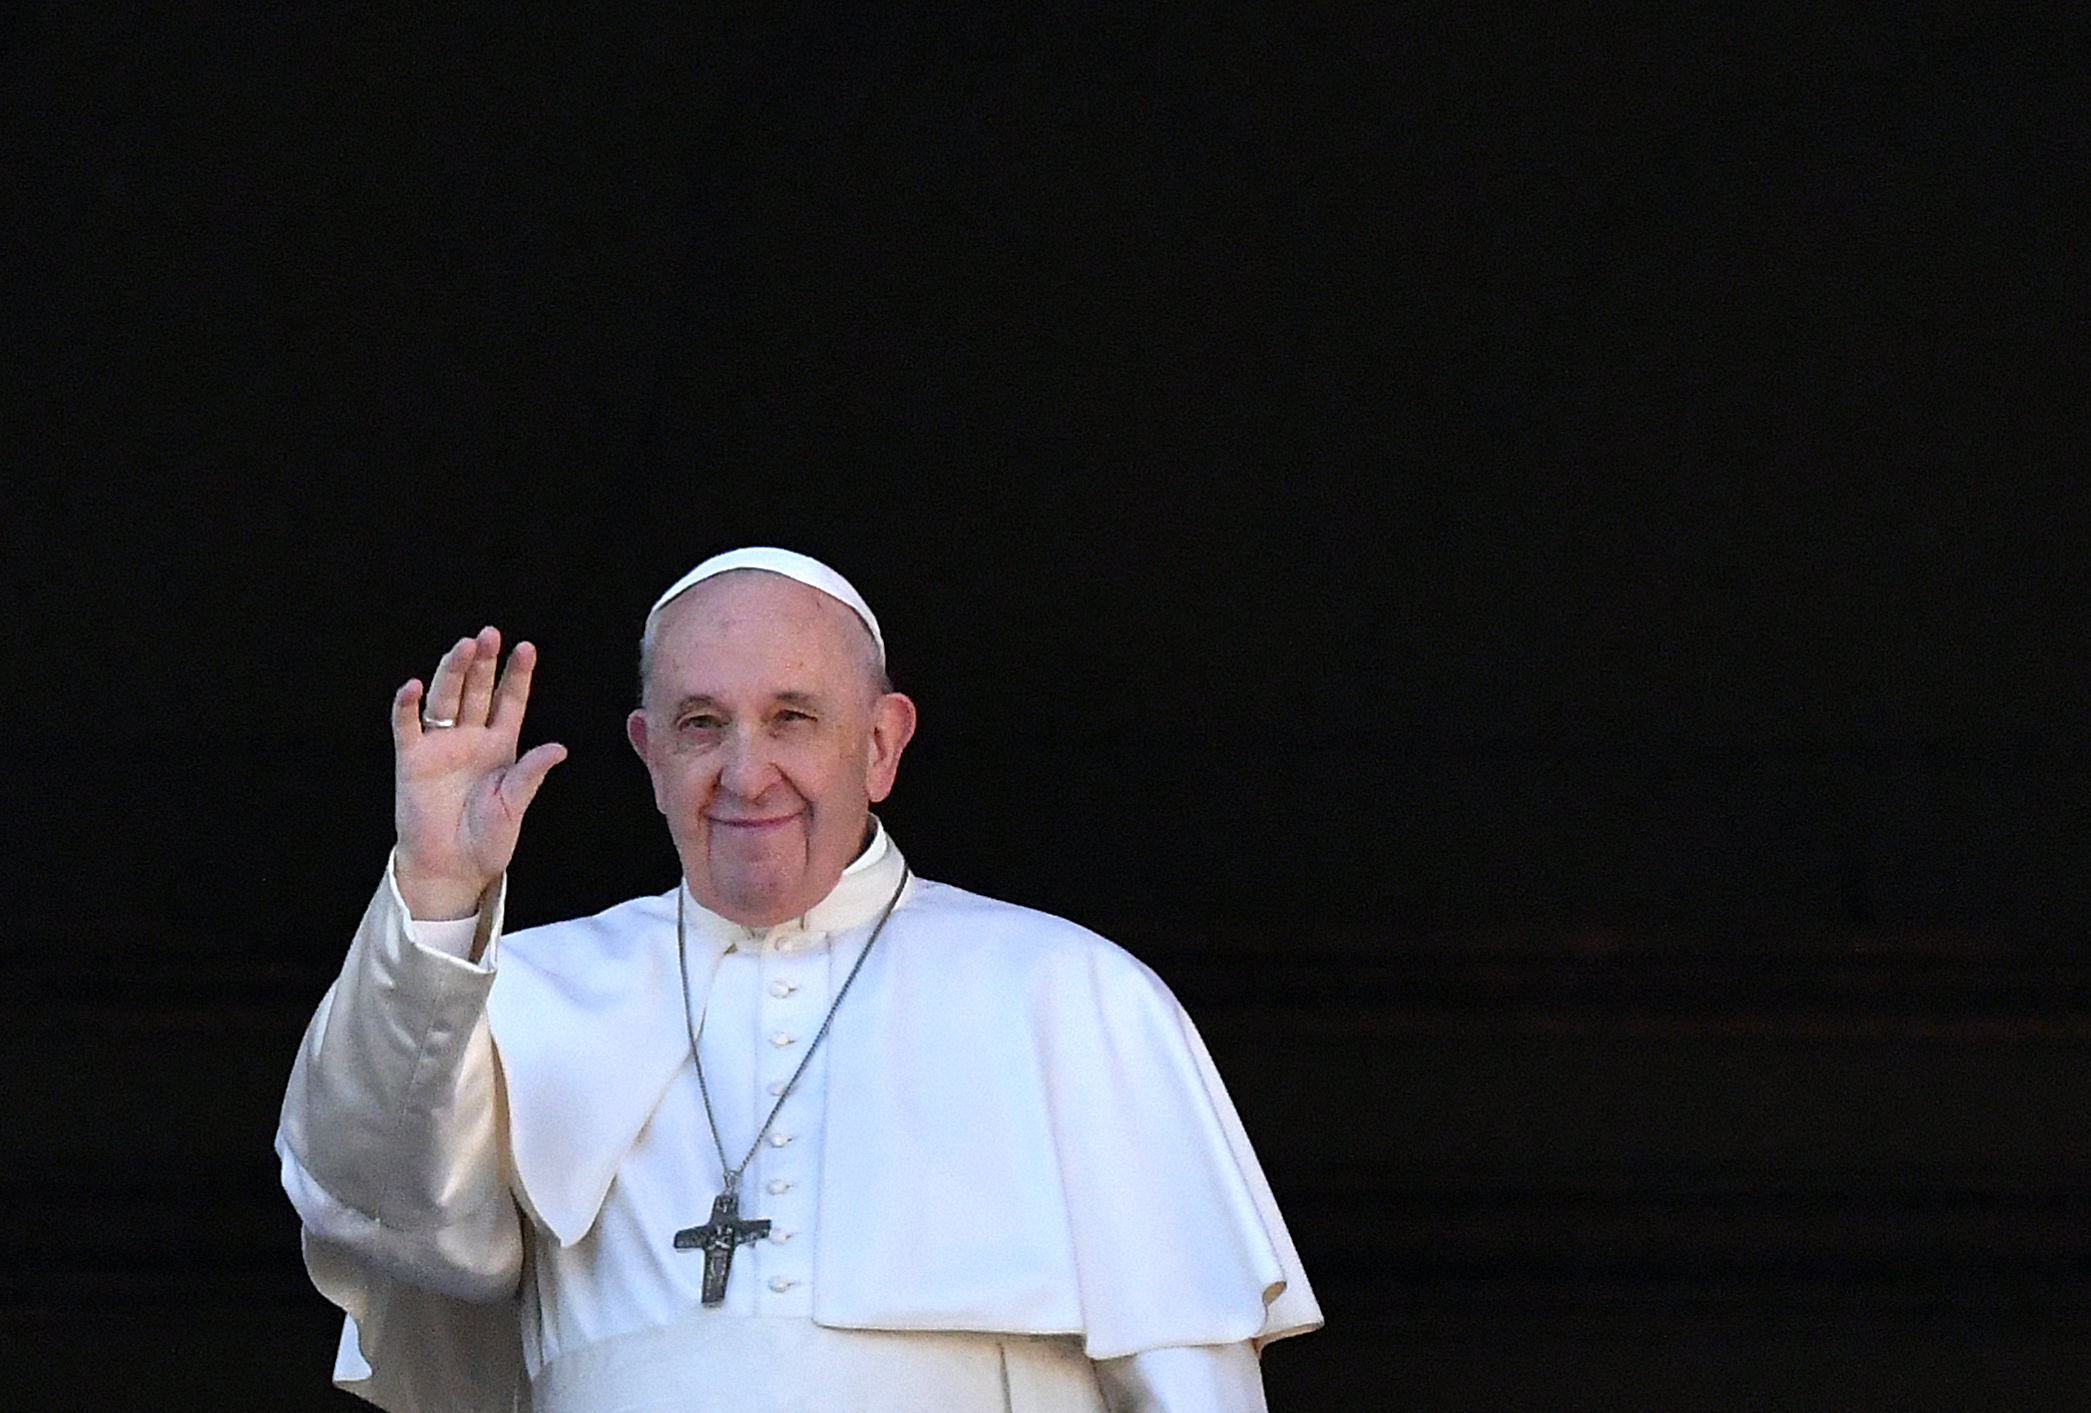 """Pope Francis waves from the balcony of St. Peter's Basilica during the traditional """"Urbi et Orbi"""" Christmas message to the city and the world, on Dec. 25, 2019 at St Peter's Square in the Vatican. (Credit: ALBERTO PIZZOLI/AFP via Getty Images)"""